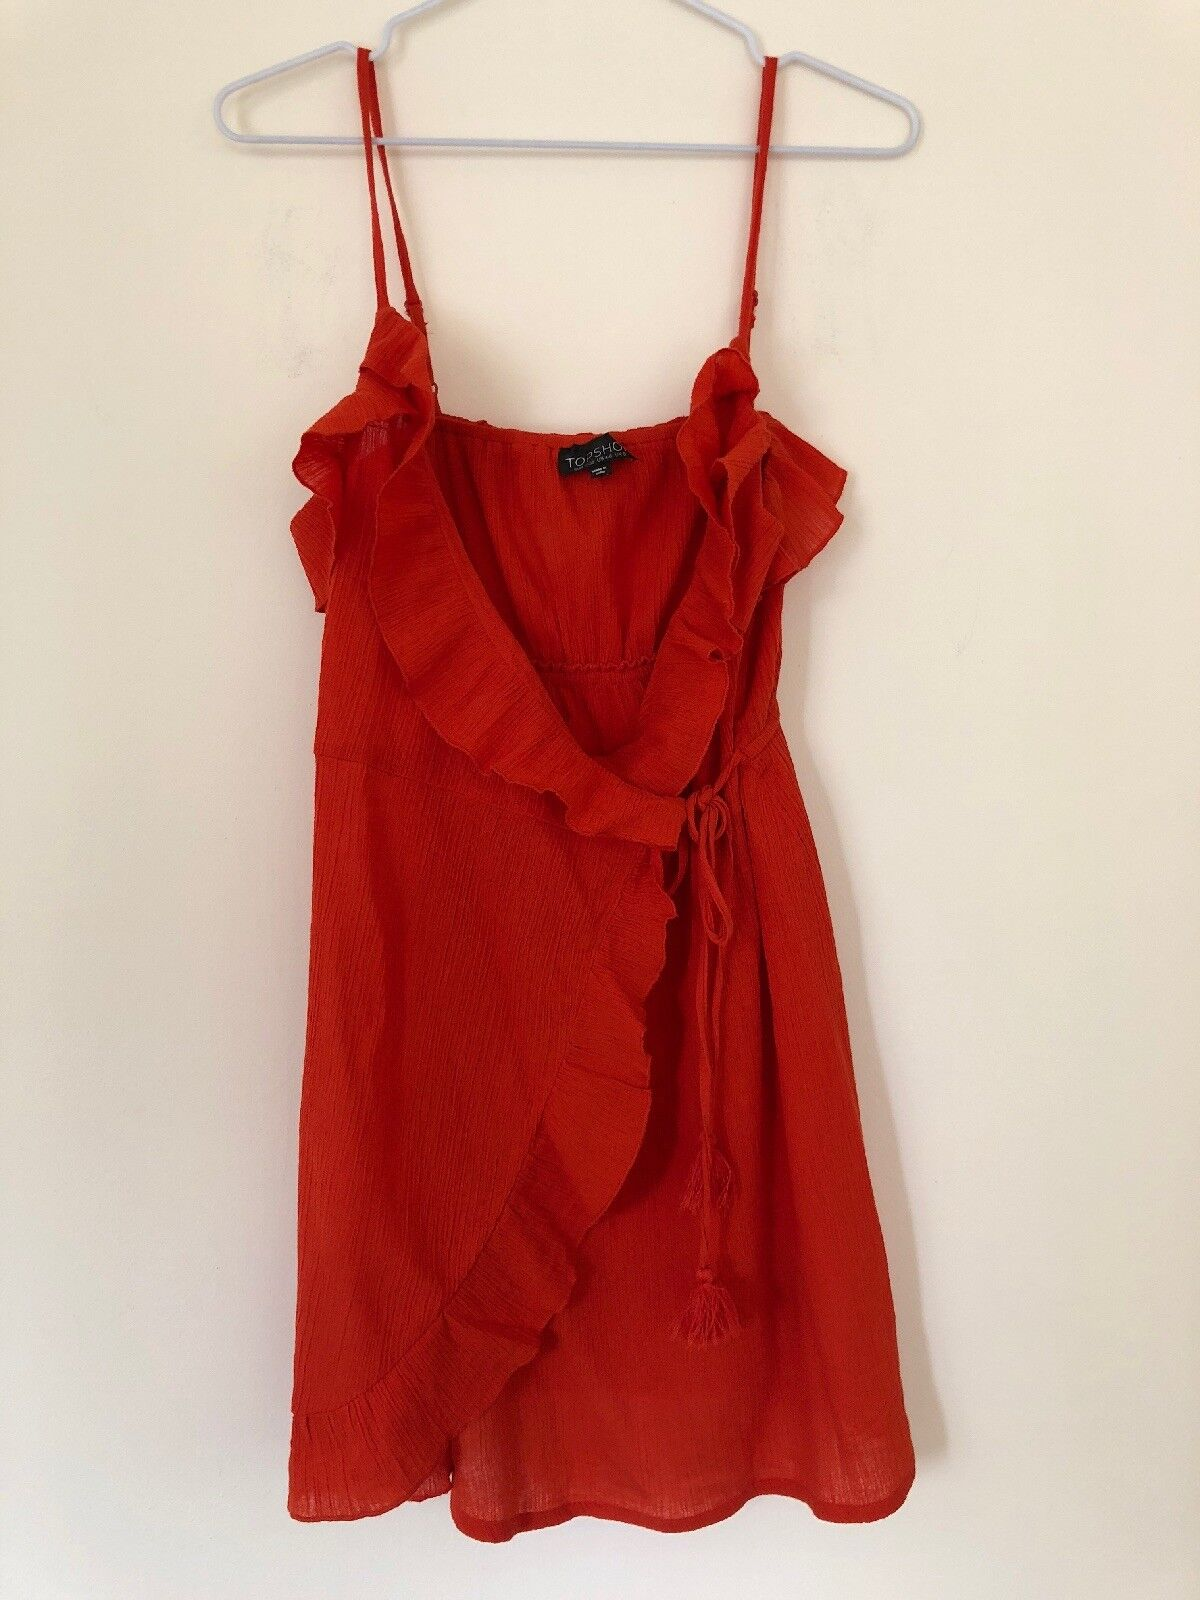 1685251902f Topshop orange Frill Wrap Beach Dress Size Small Ruffle nuoubt4128 ...